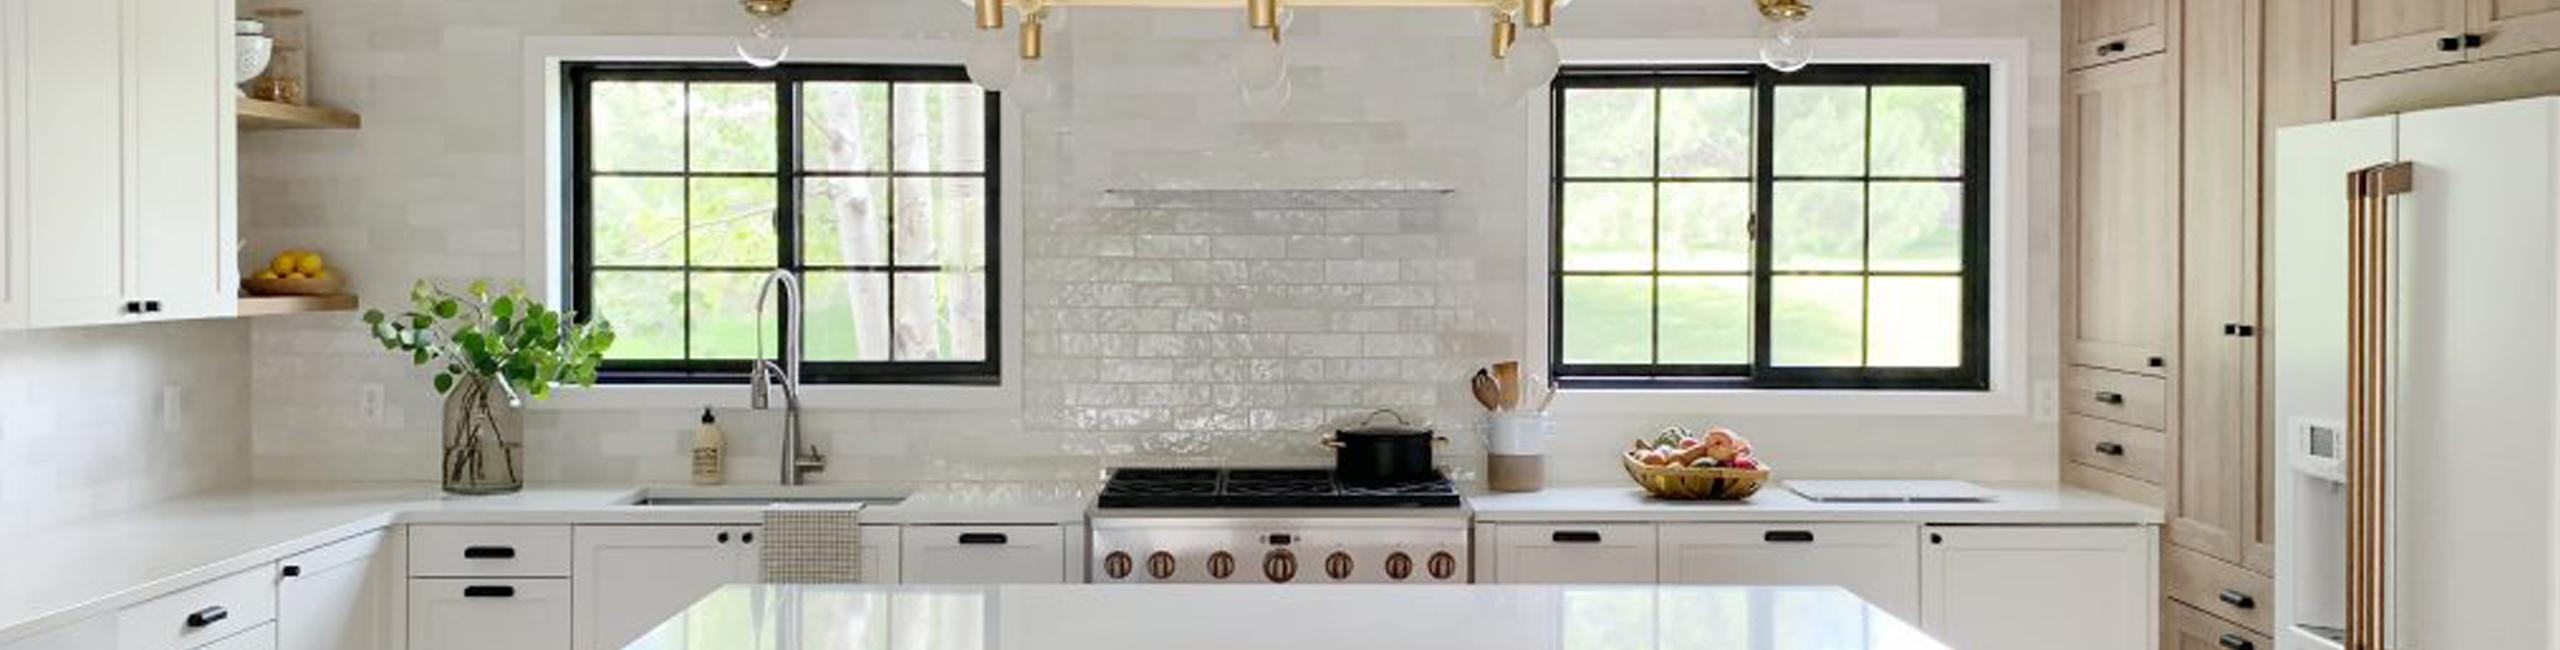 Kitchen Backsplash & Range Hood Designed By Chris Loves Julia